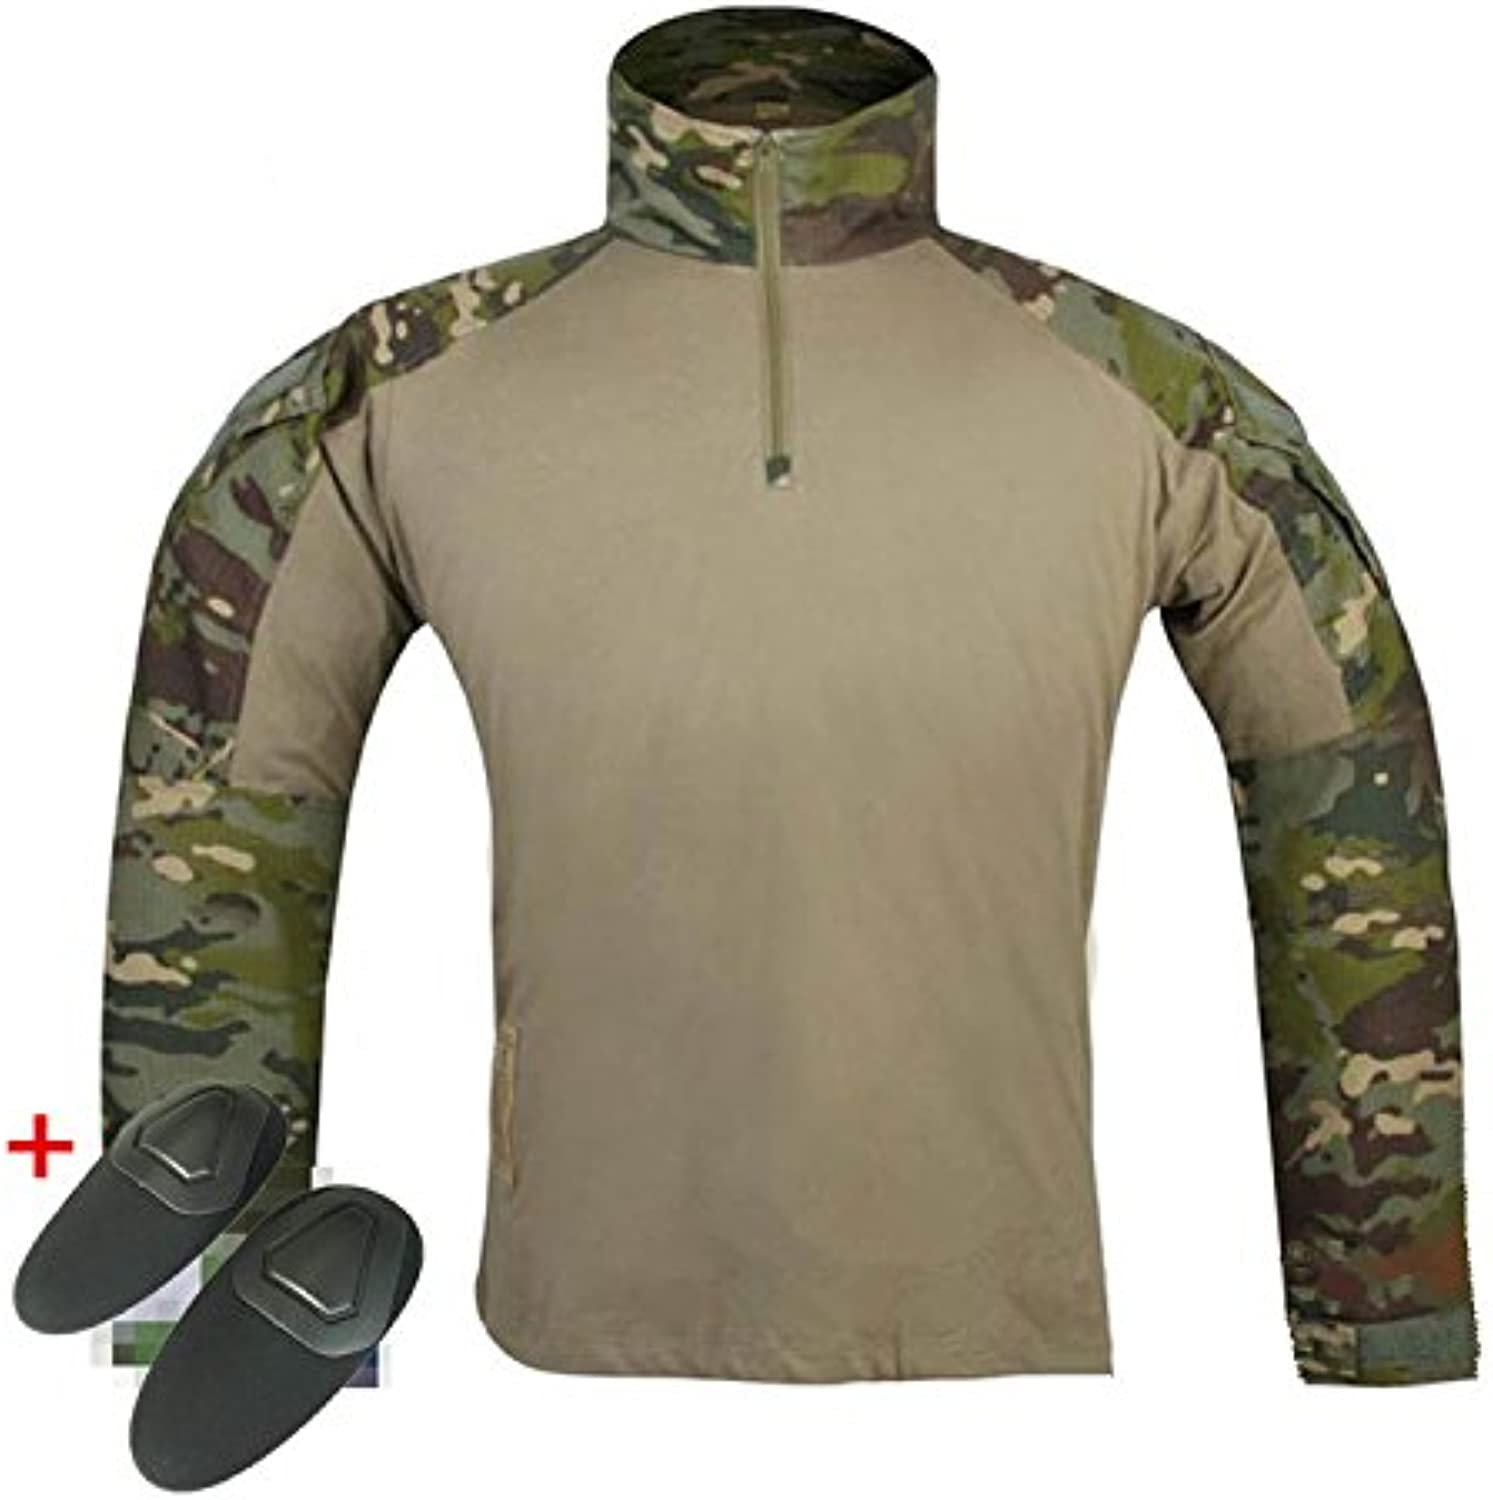 H World Shopping Emerson Military Mens BDU Gen3 G3 Combat Shirt w Elbow Pads